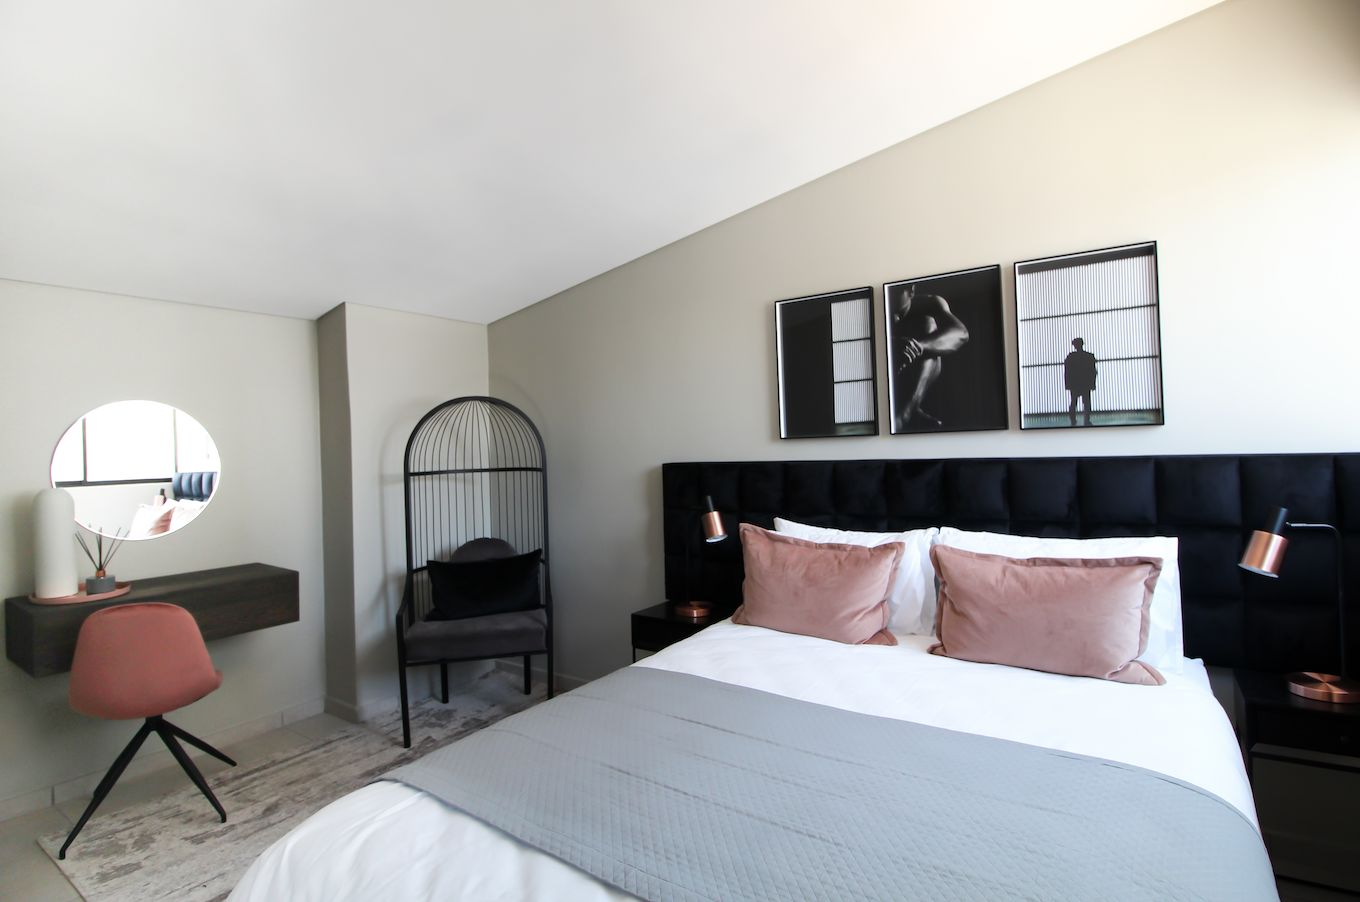 Airbnb Bedroom Design Cape Town.jpg